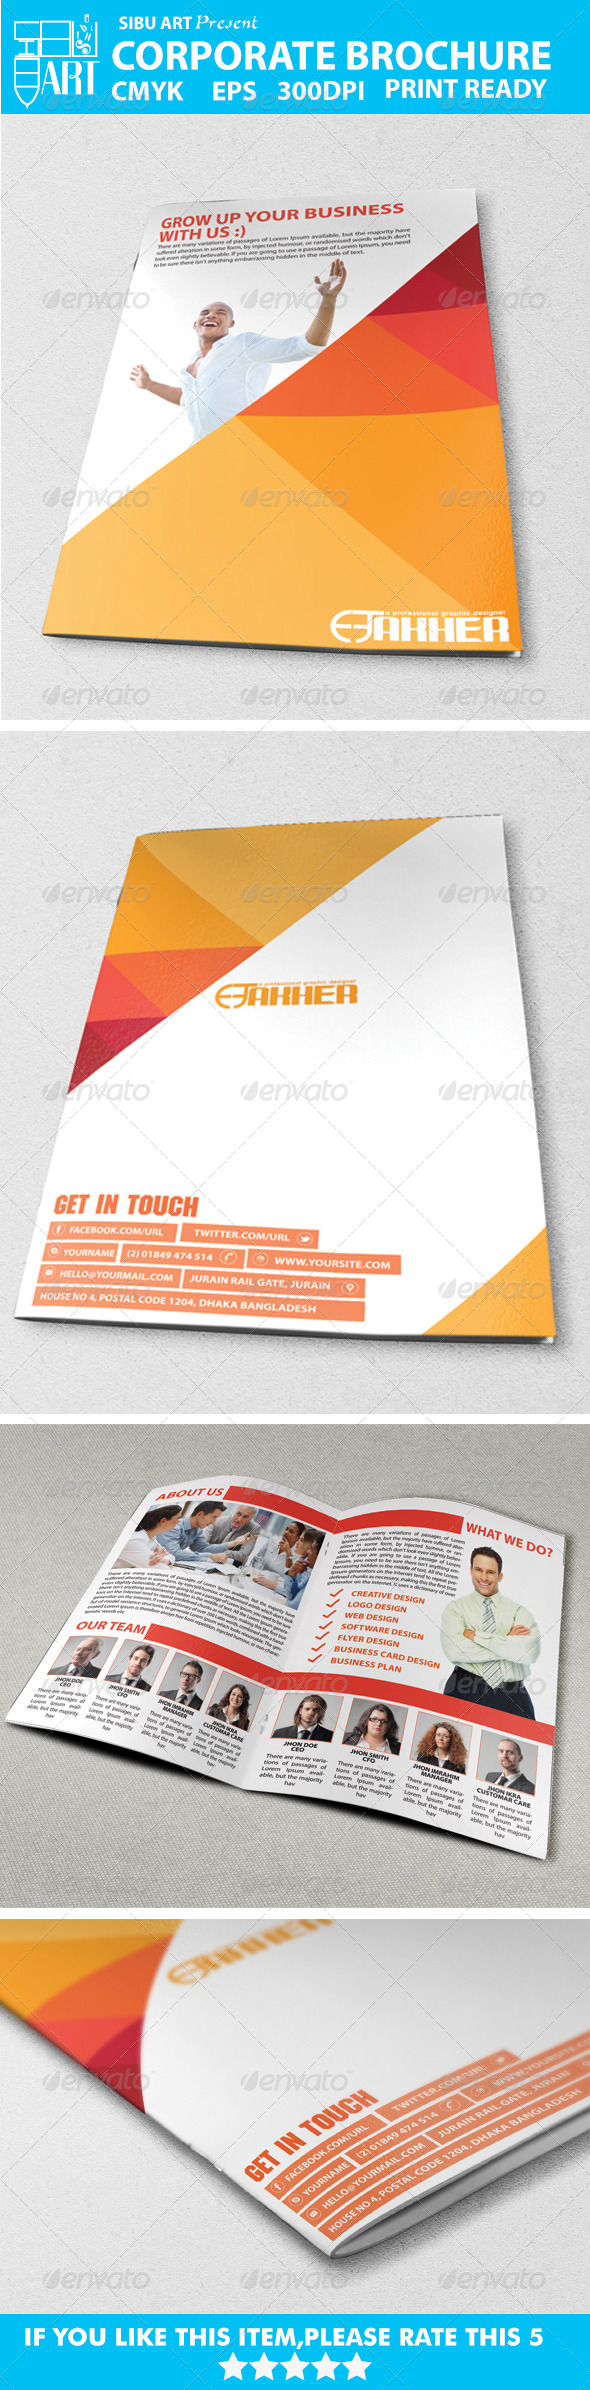 Corporate Brochures VOl-001 - Corporate Brochures